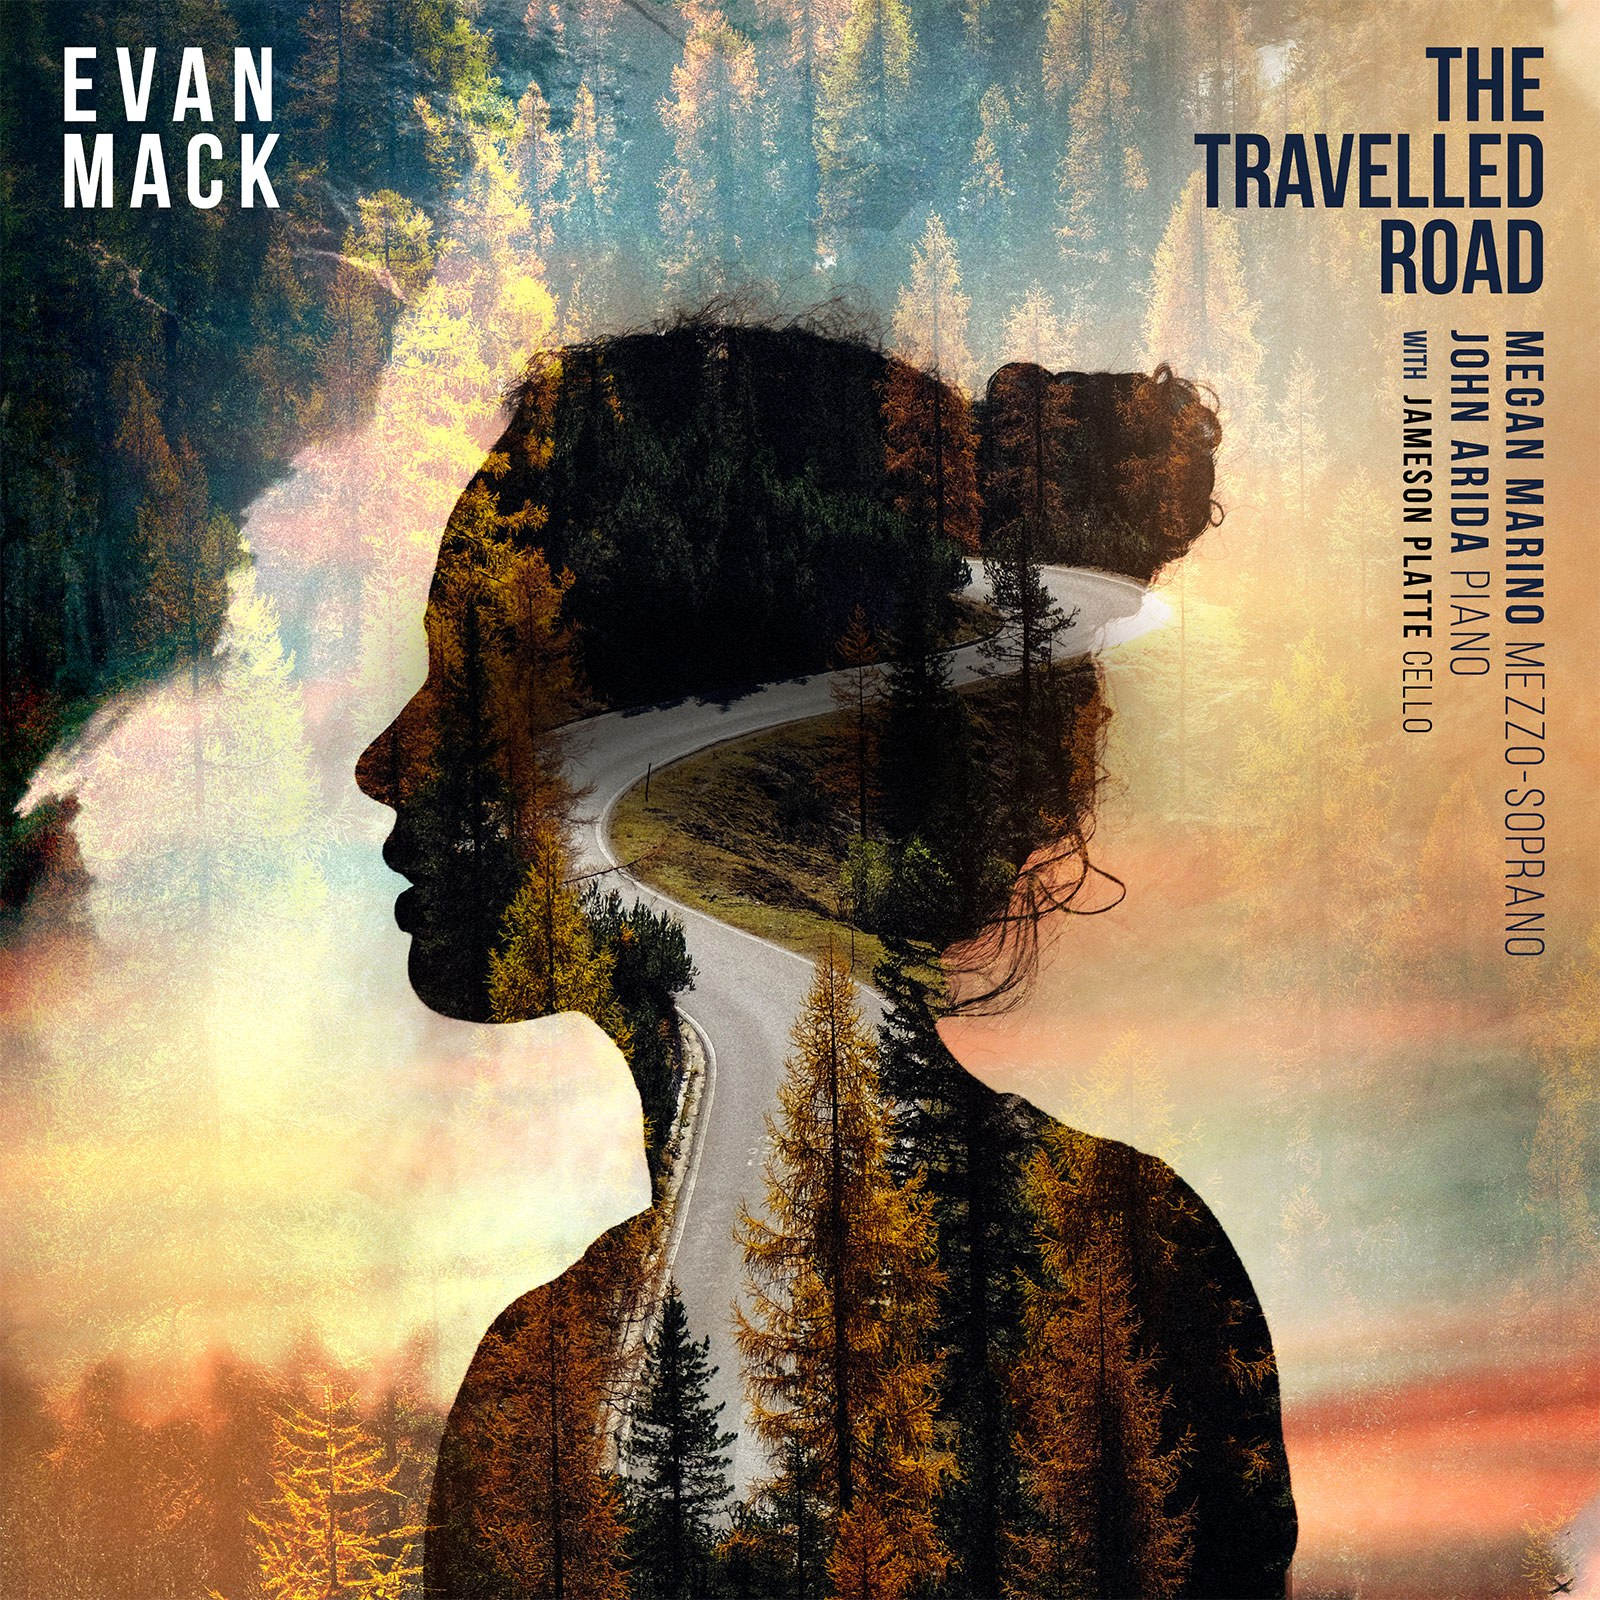 THE TRAVELLED ROAD - Album Cover